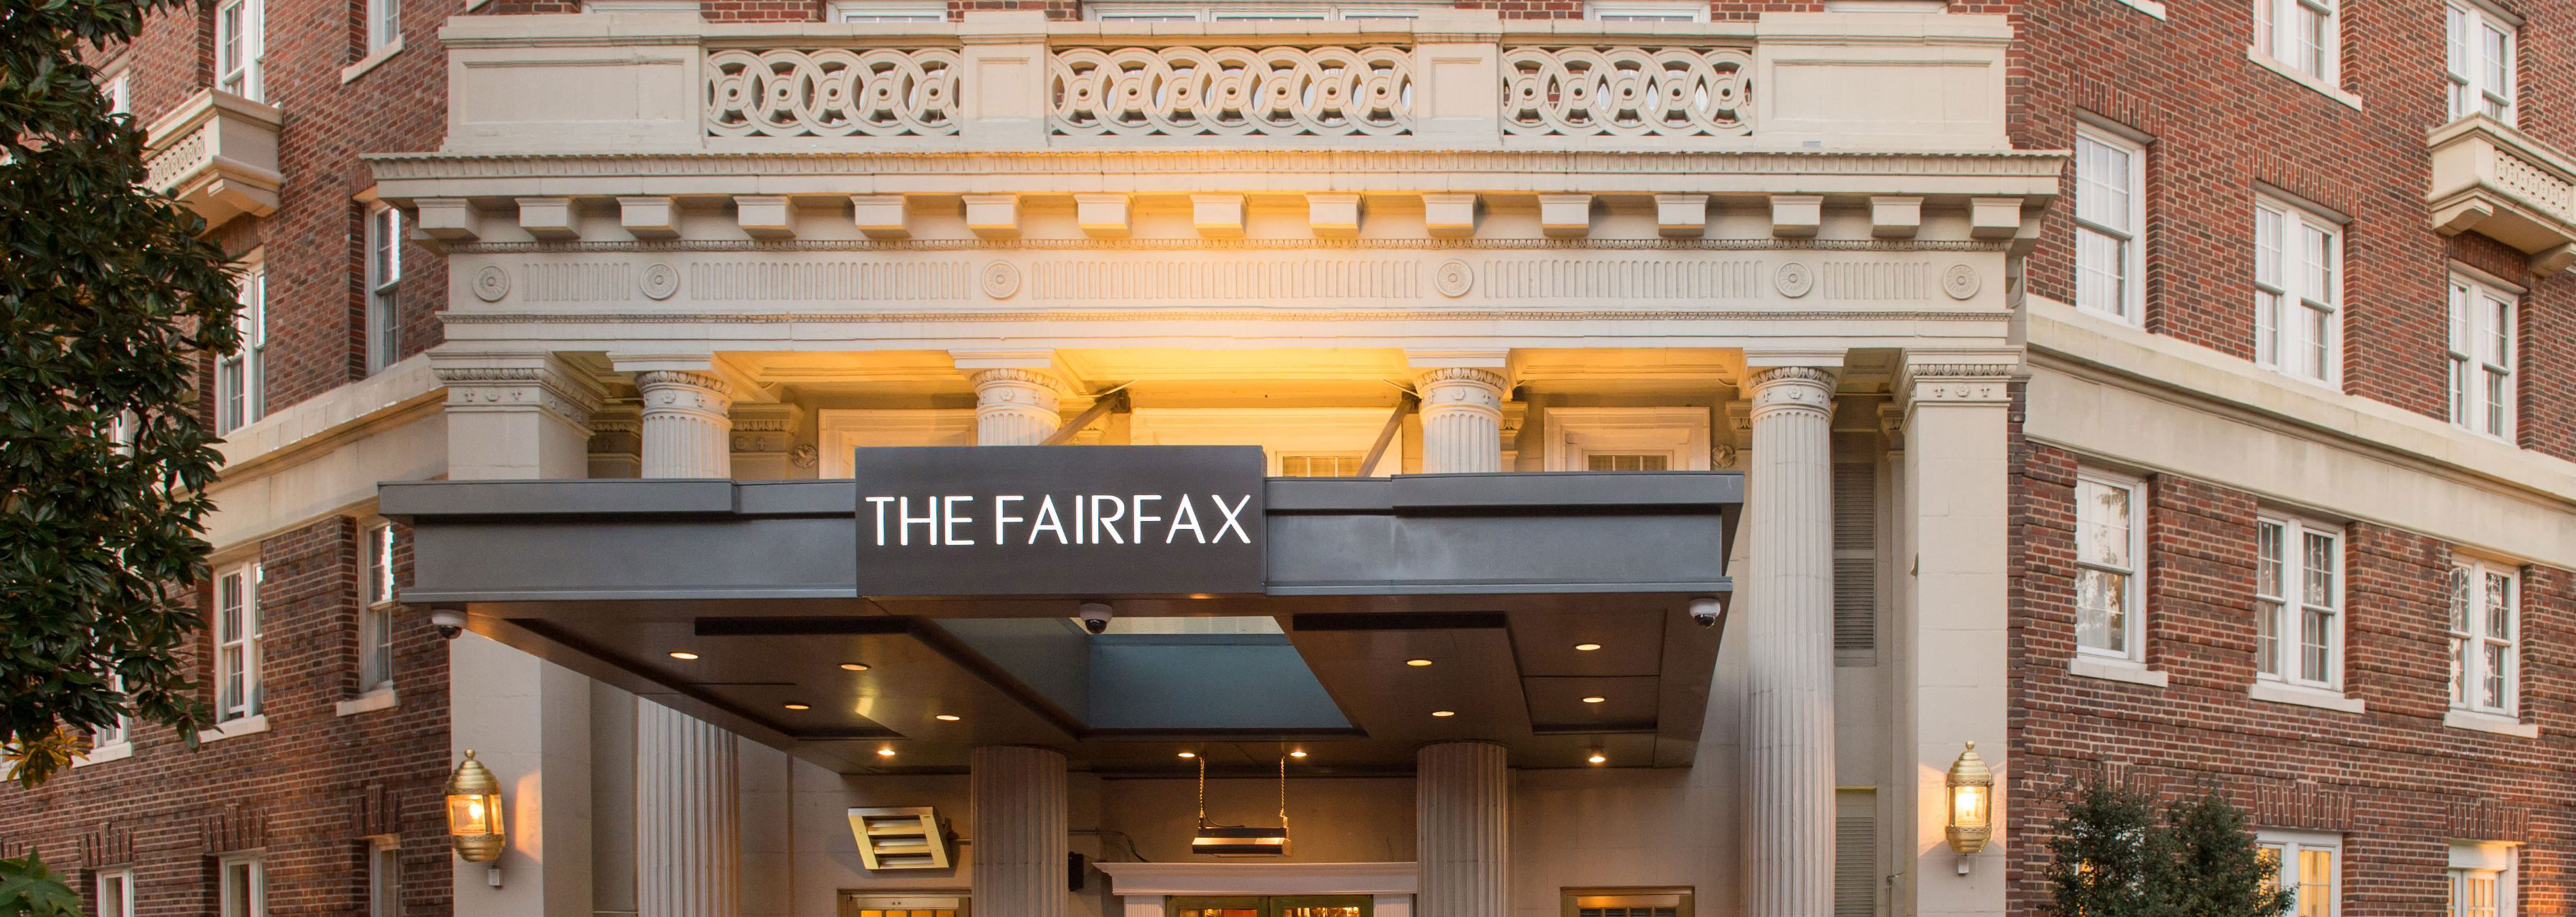 Daytime exterior and entrance to The Fairfax at Embassy Row in Washington, DC.